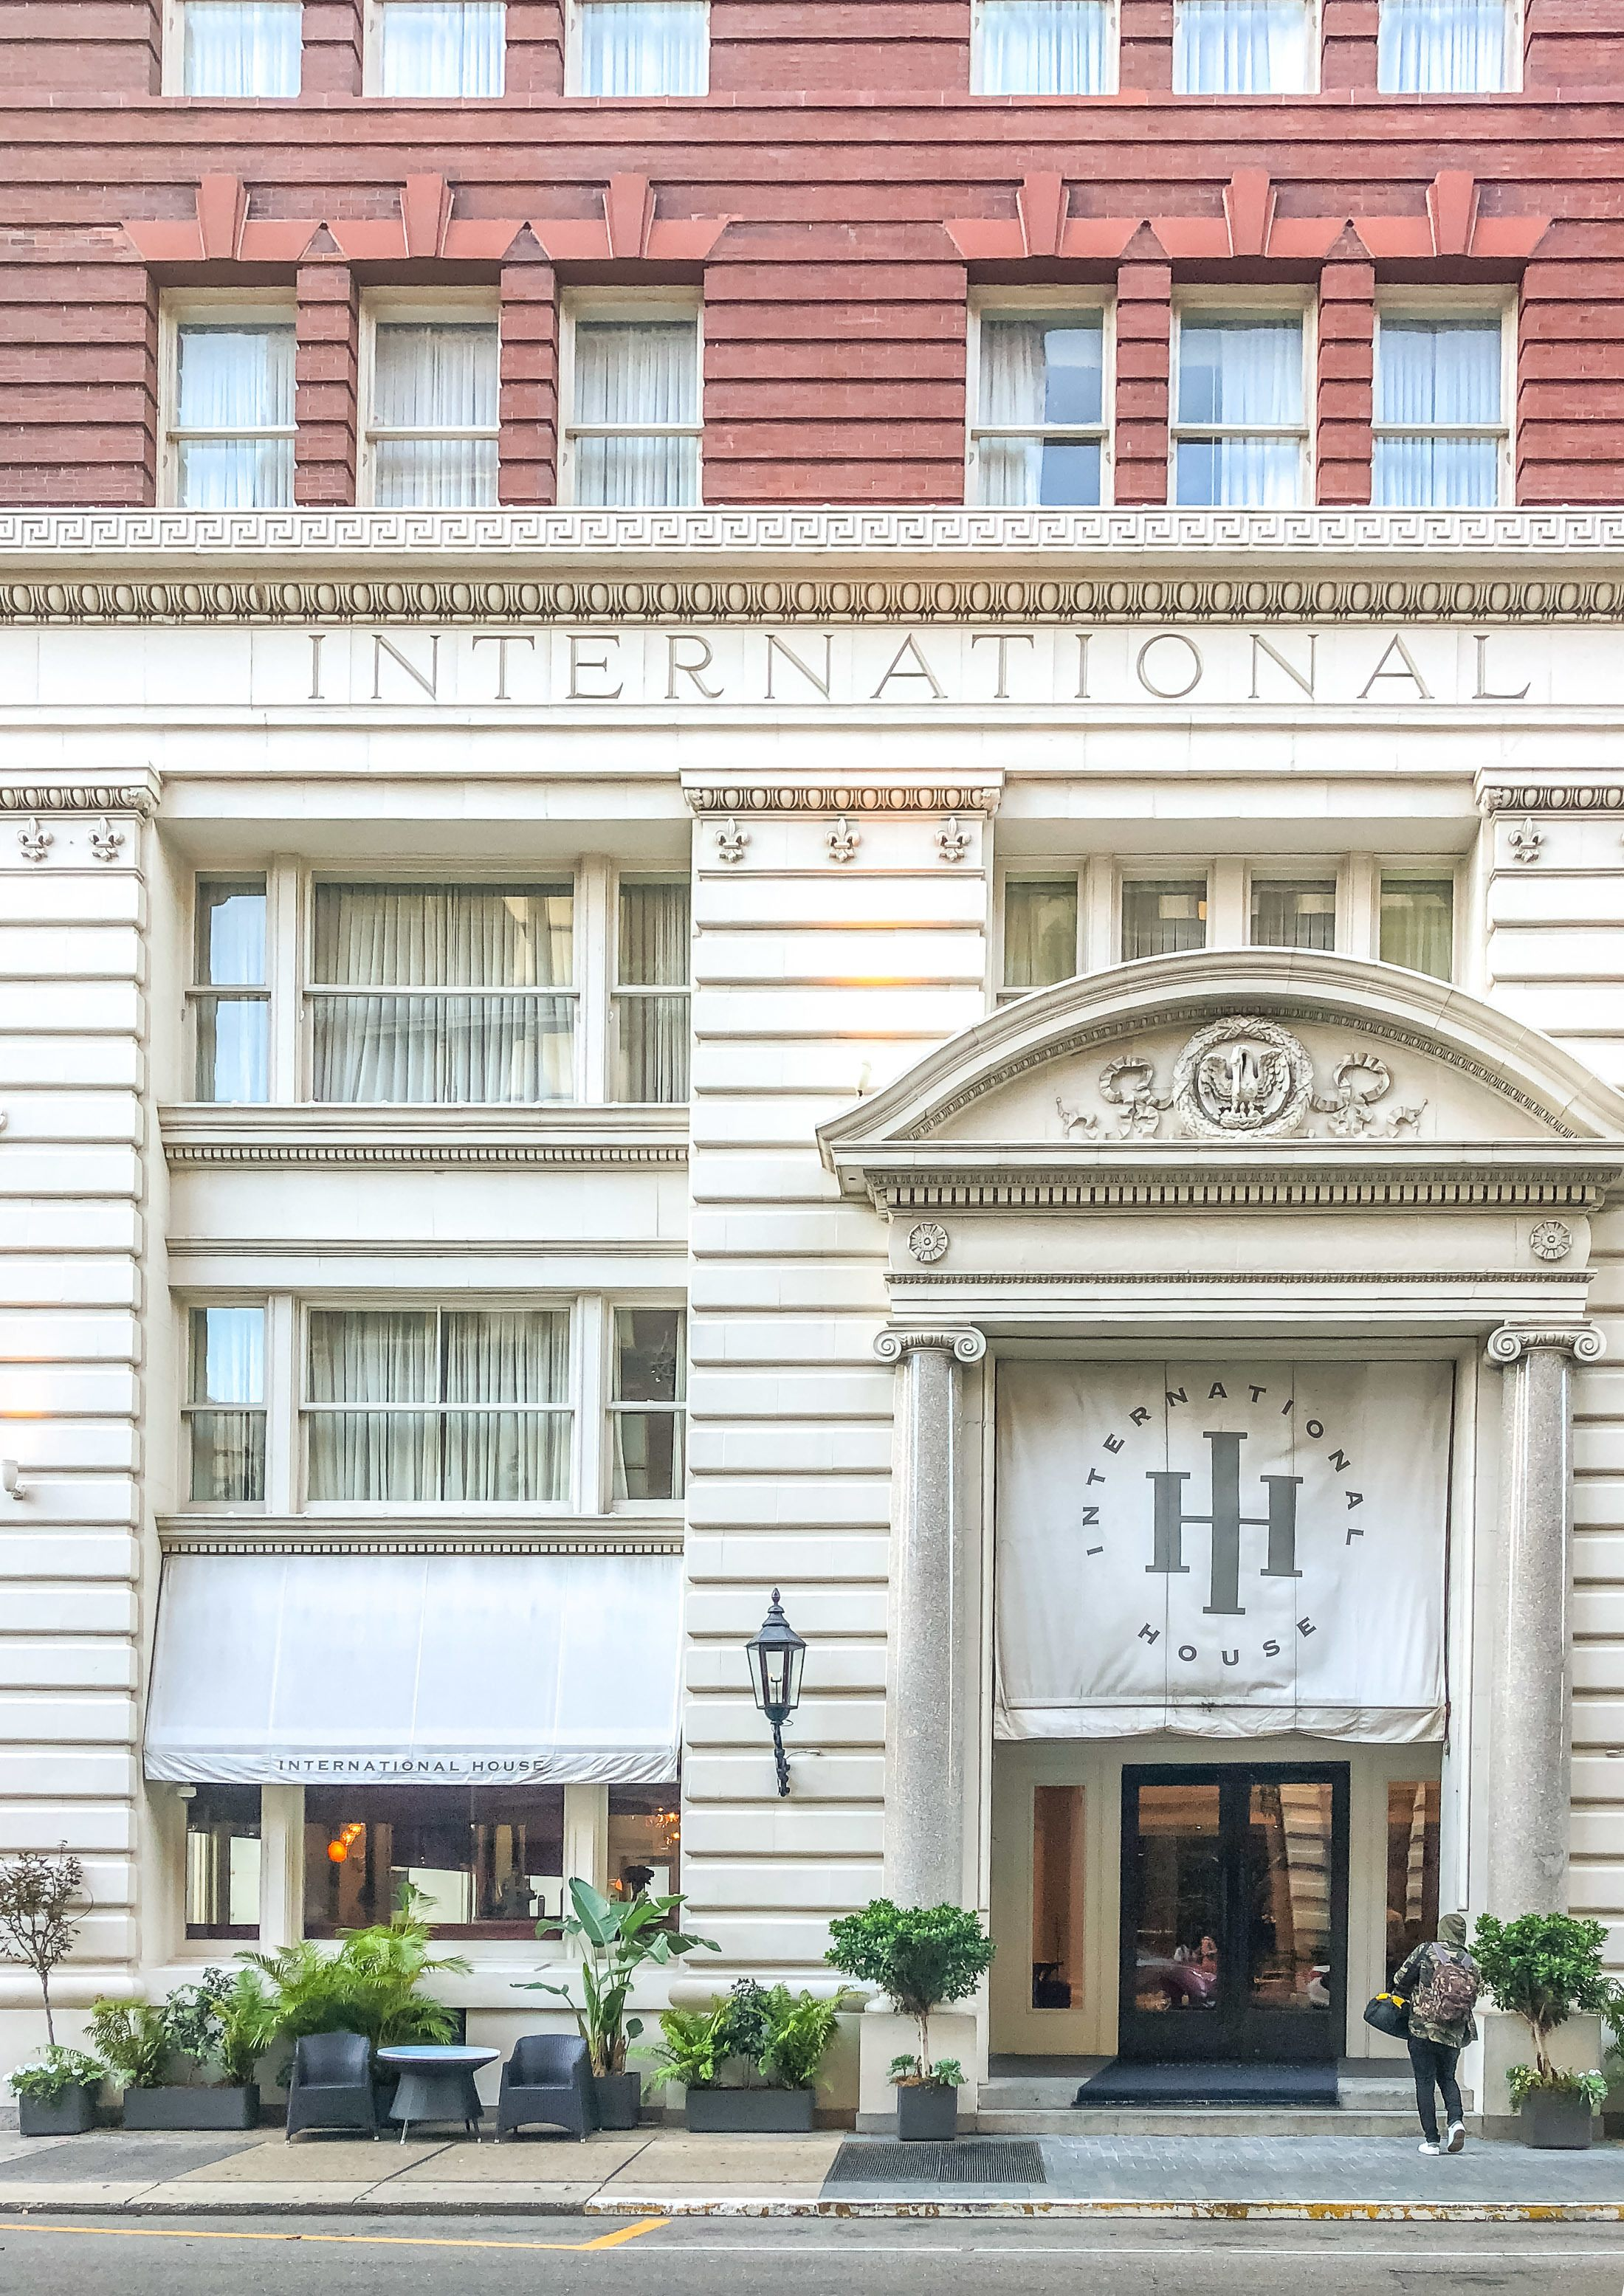 The international house new orleans review best new for Boutique hotel nrw